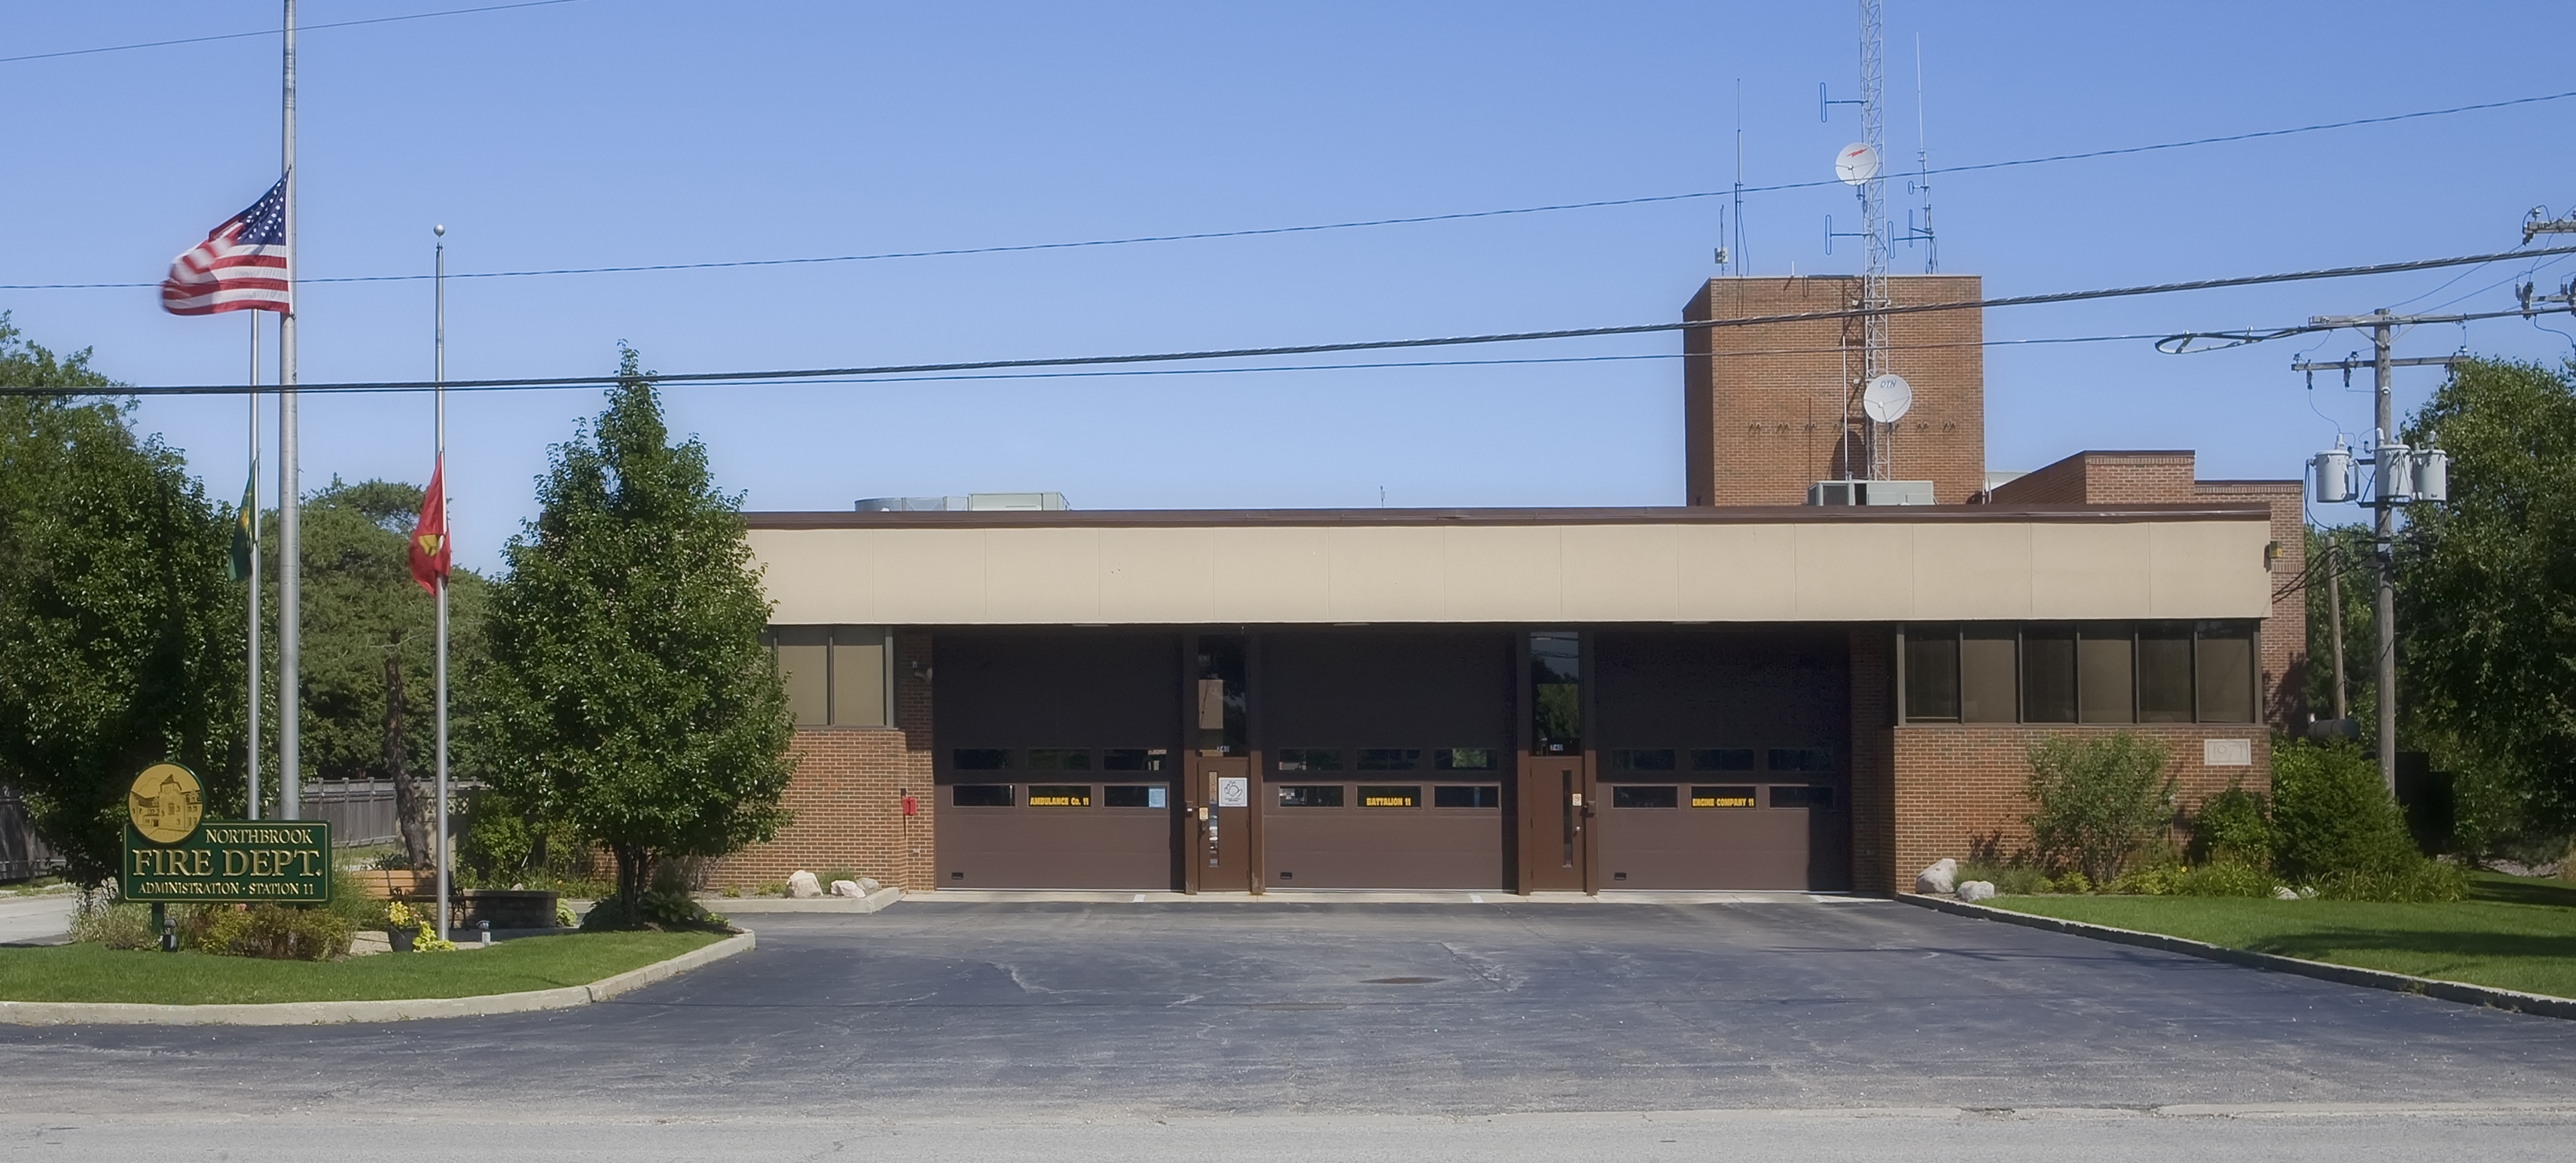 Northbrook Fire Department Station 11